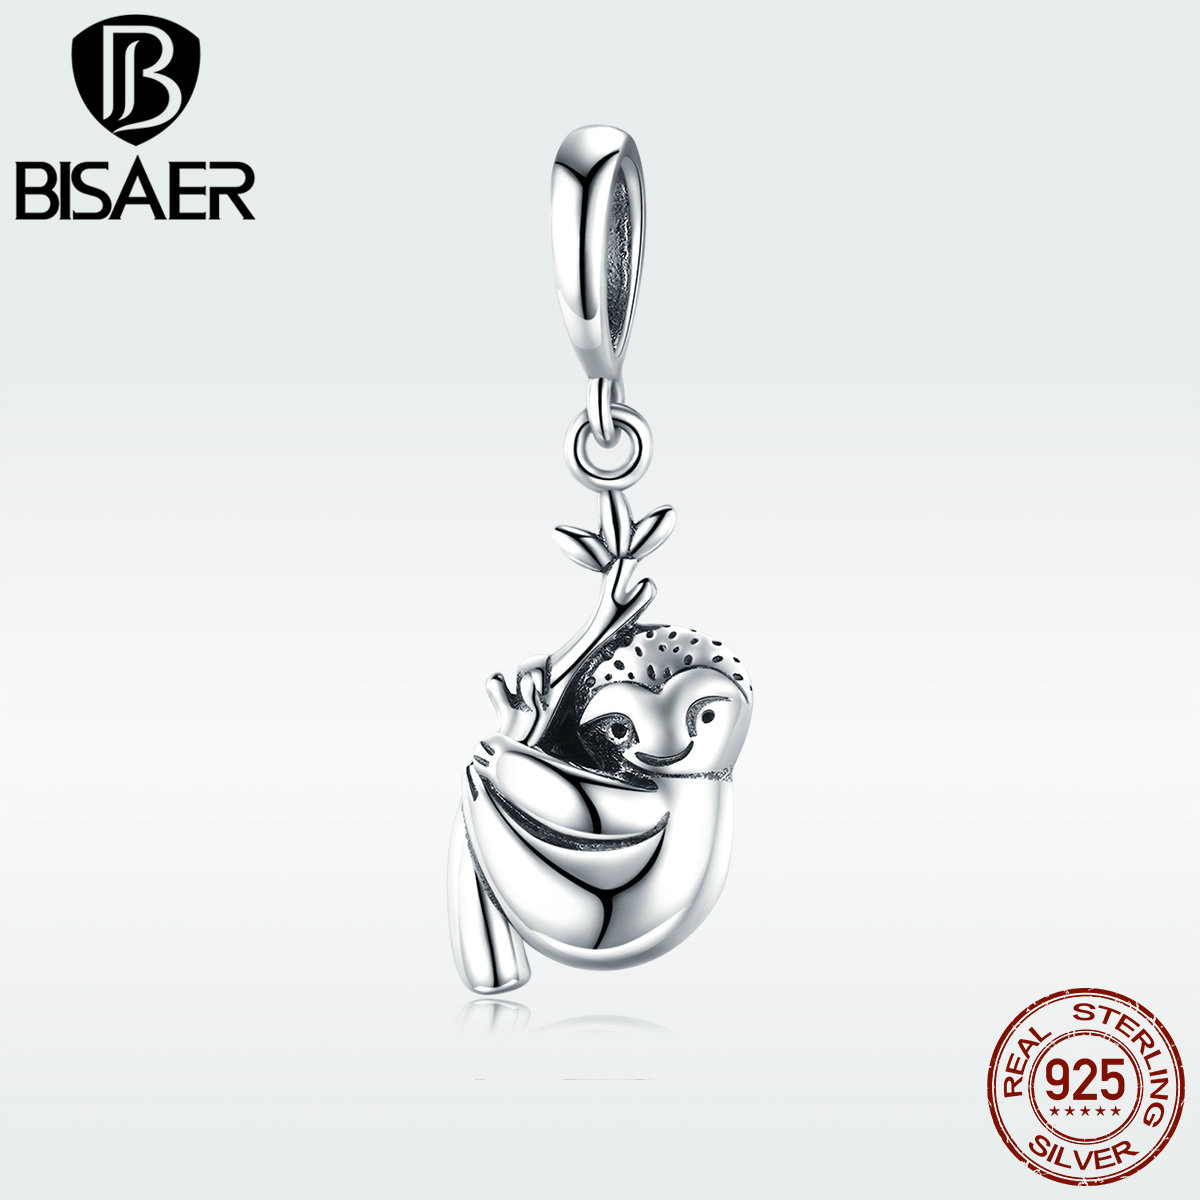 Bisaer Charms 925 Sterling Silver Animal Sloth Flash Pendant Charm For Jewelry Making 3mm Snake Bracelet Fashion Hsc866 In Beads From